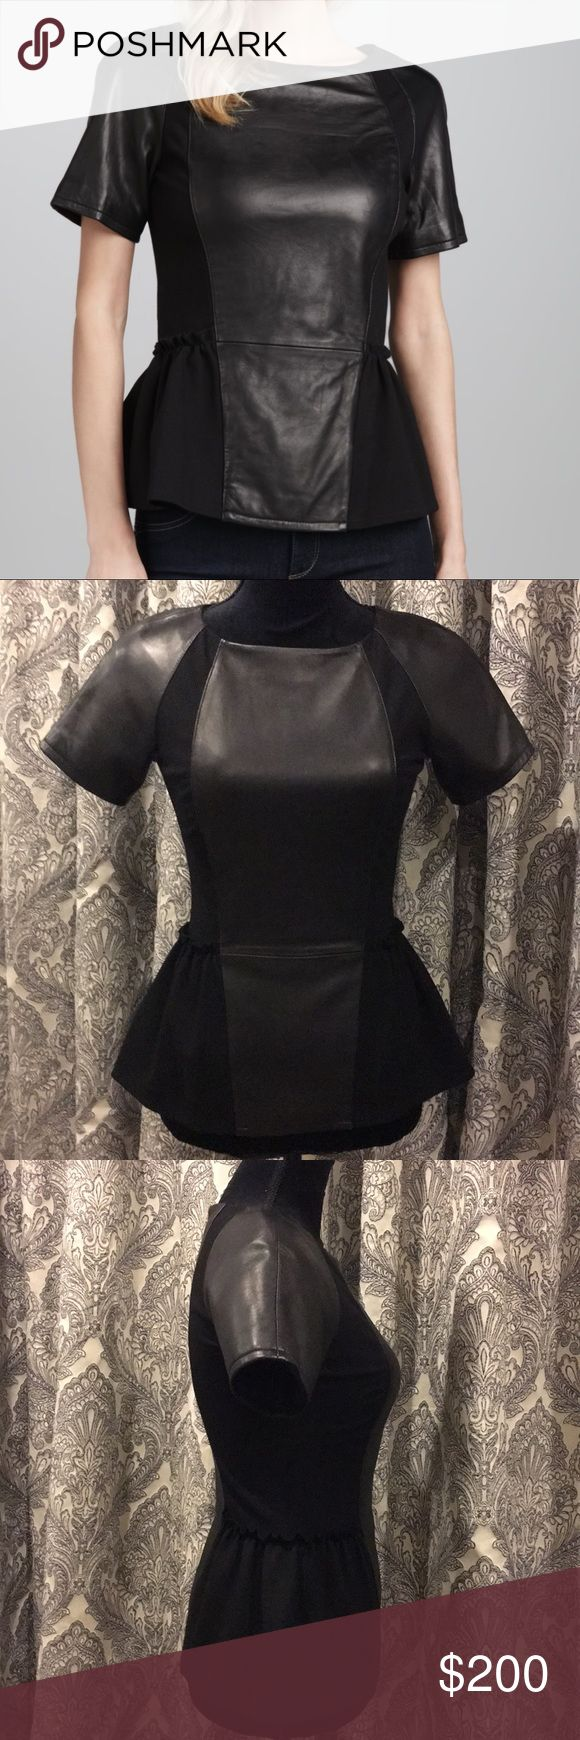 """REBECCA MINKOFF LEATHER PEPLUM TOP Black leather center front and back panel and leather short sleeves. Zipper back closure. EUC MANNEQUIN MEASURES 34"""" 26"""" 35""""  Very soft supple leather, size panels have some stretch.  Amazing fit!!!! Size 0 Rebecca Minkoff Tops"""